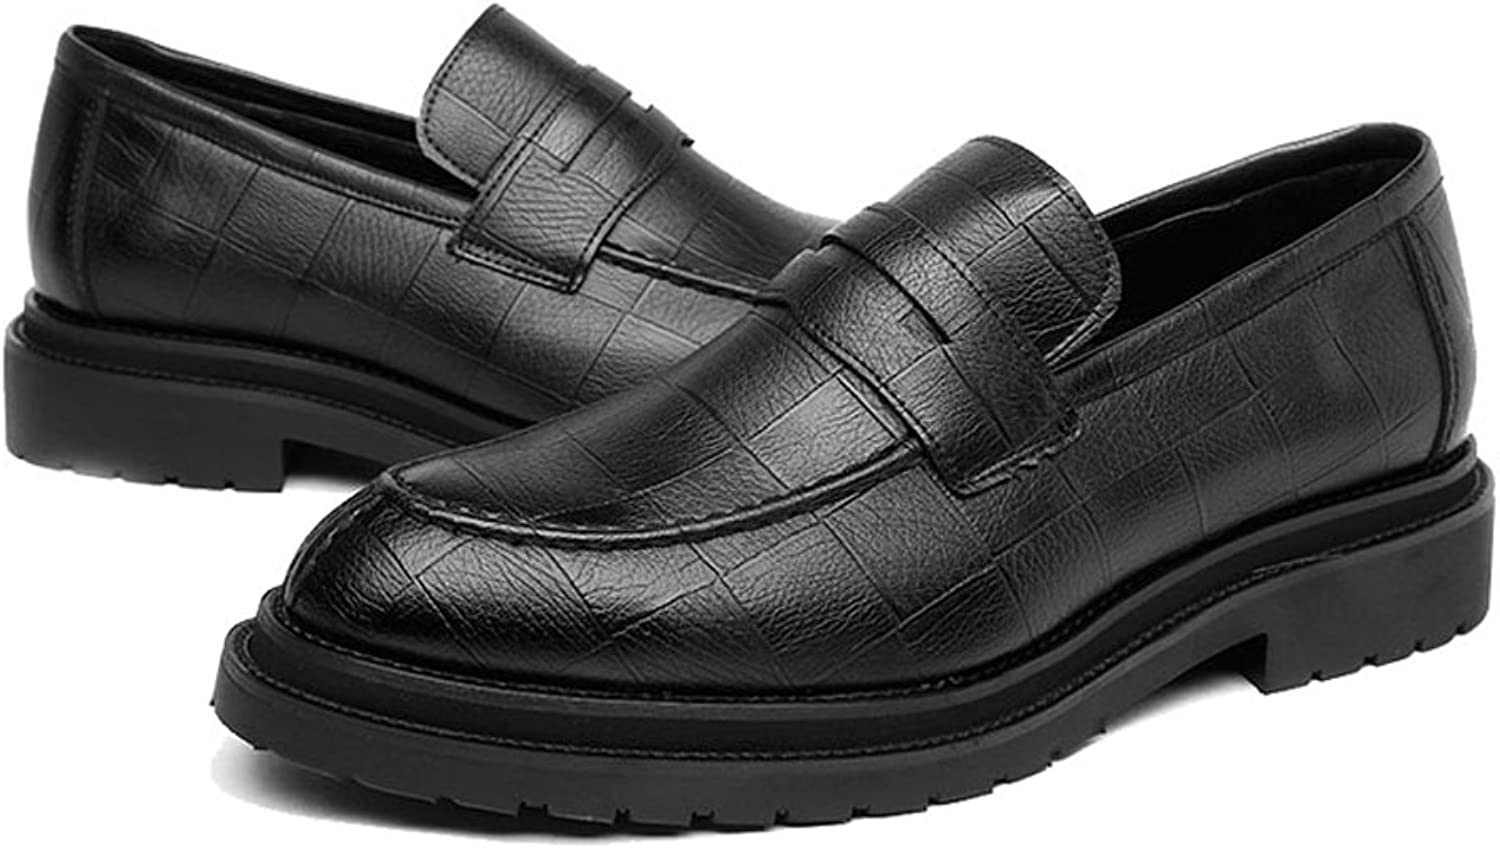 FeiNianJSh Men's Classic shoes PU Leather shoes Slip-on Loafers Square Texture Outsole Business Oxfords Comfort shoes